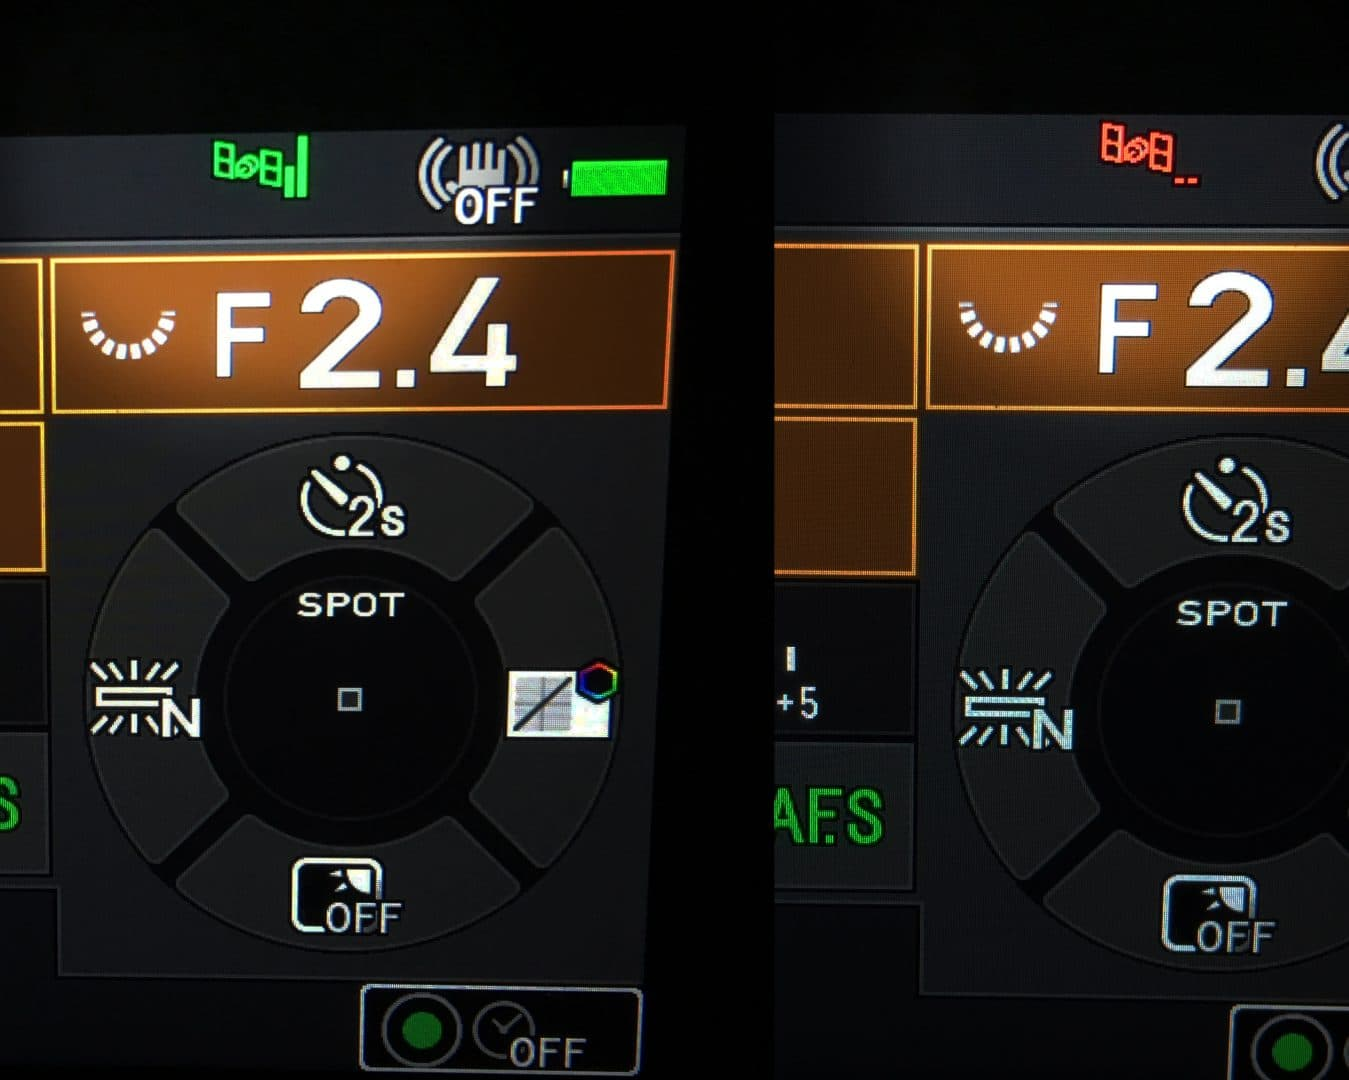 A green satellite icon at the top of the screen (left image) shows the Pentax K-1 has successfully locked onto the GPS signal.